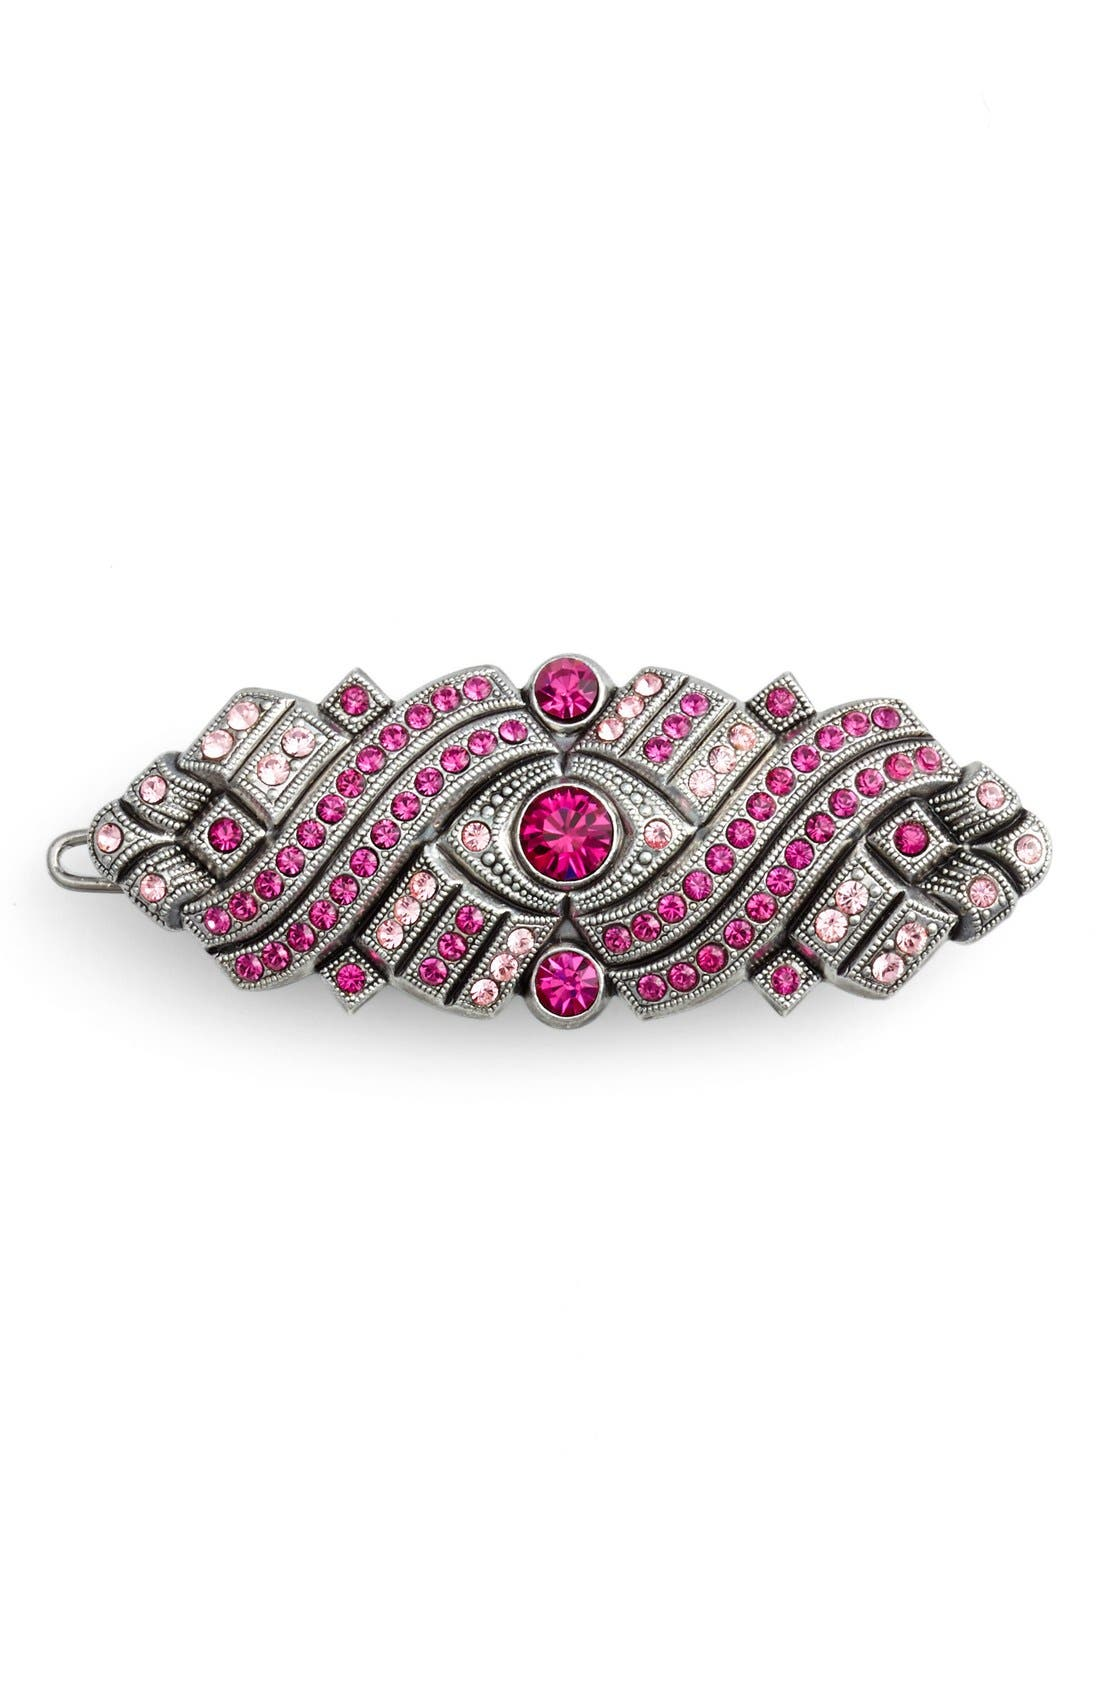 Alternate Image 1 Selected - L. Erickson 'Bavaria' Swarovski Crystal Tige Boule Barrette